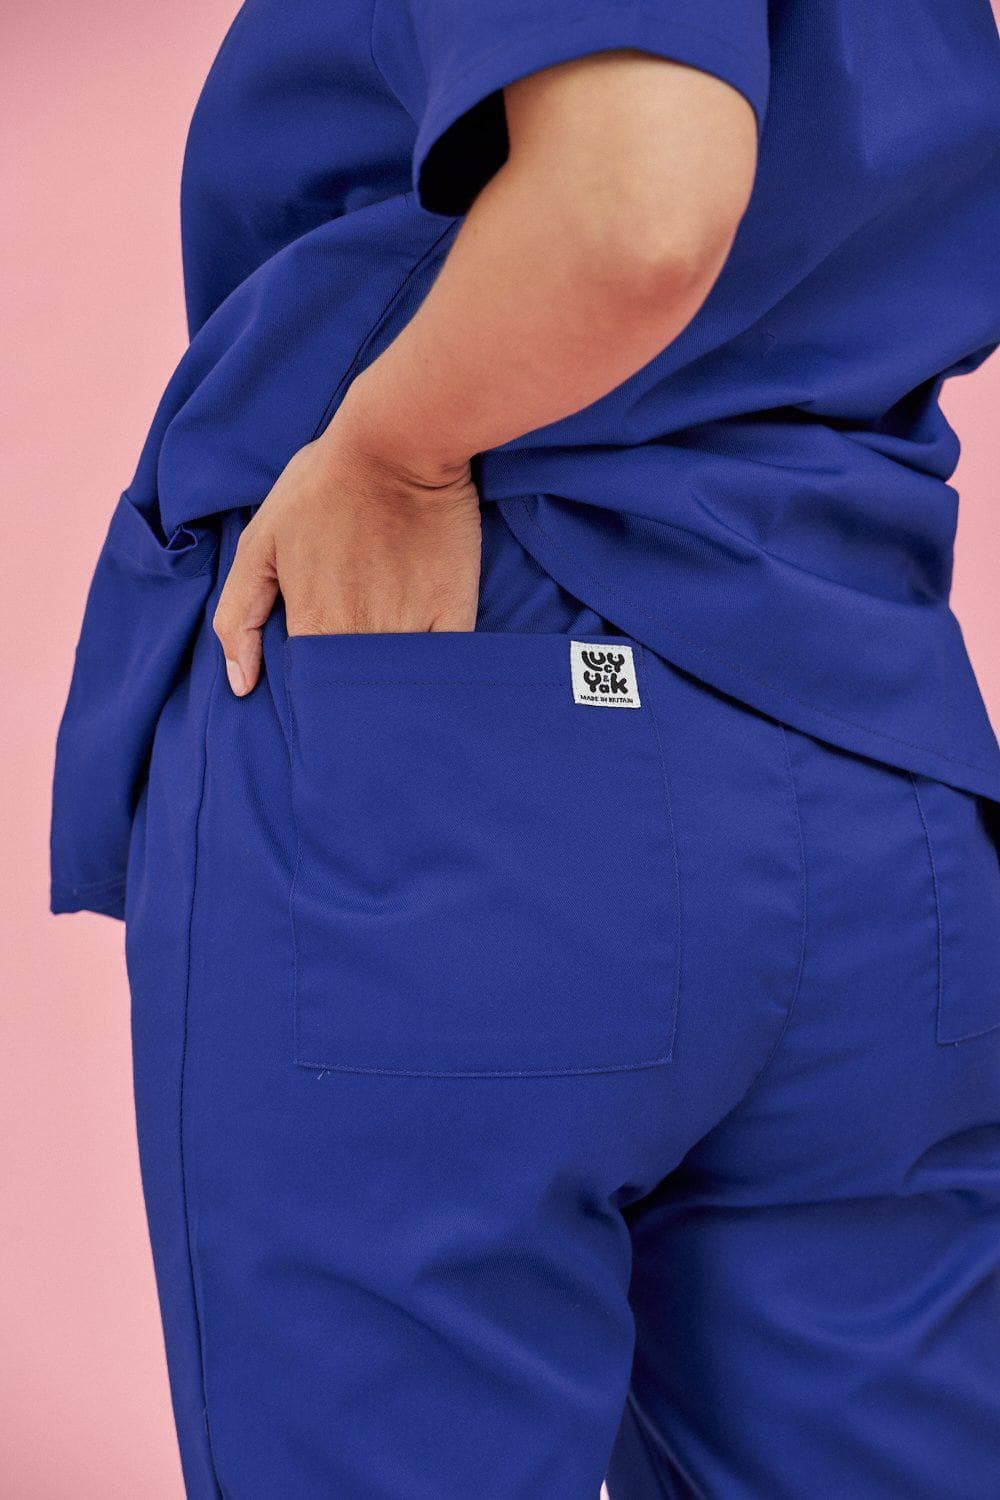 Lucy & Yak trousers Scrubs Trousers In Royal Blue (correct prices need adding)